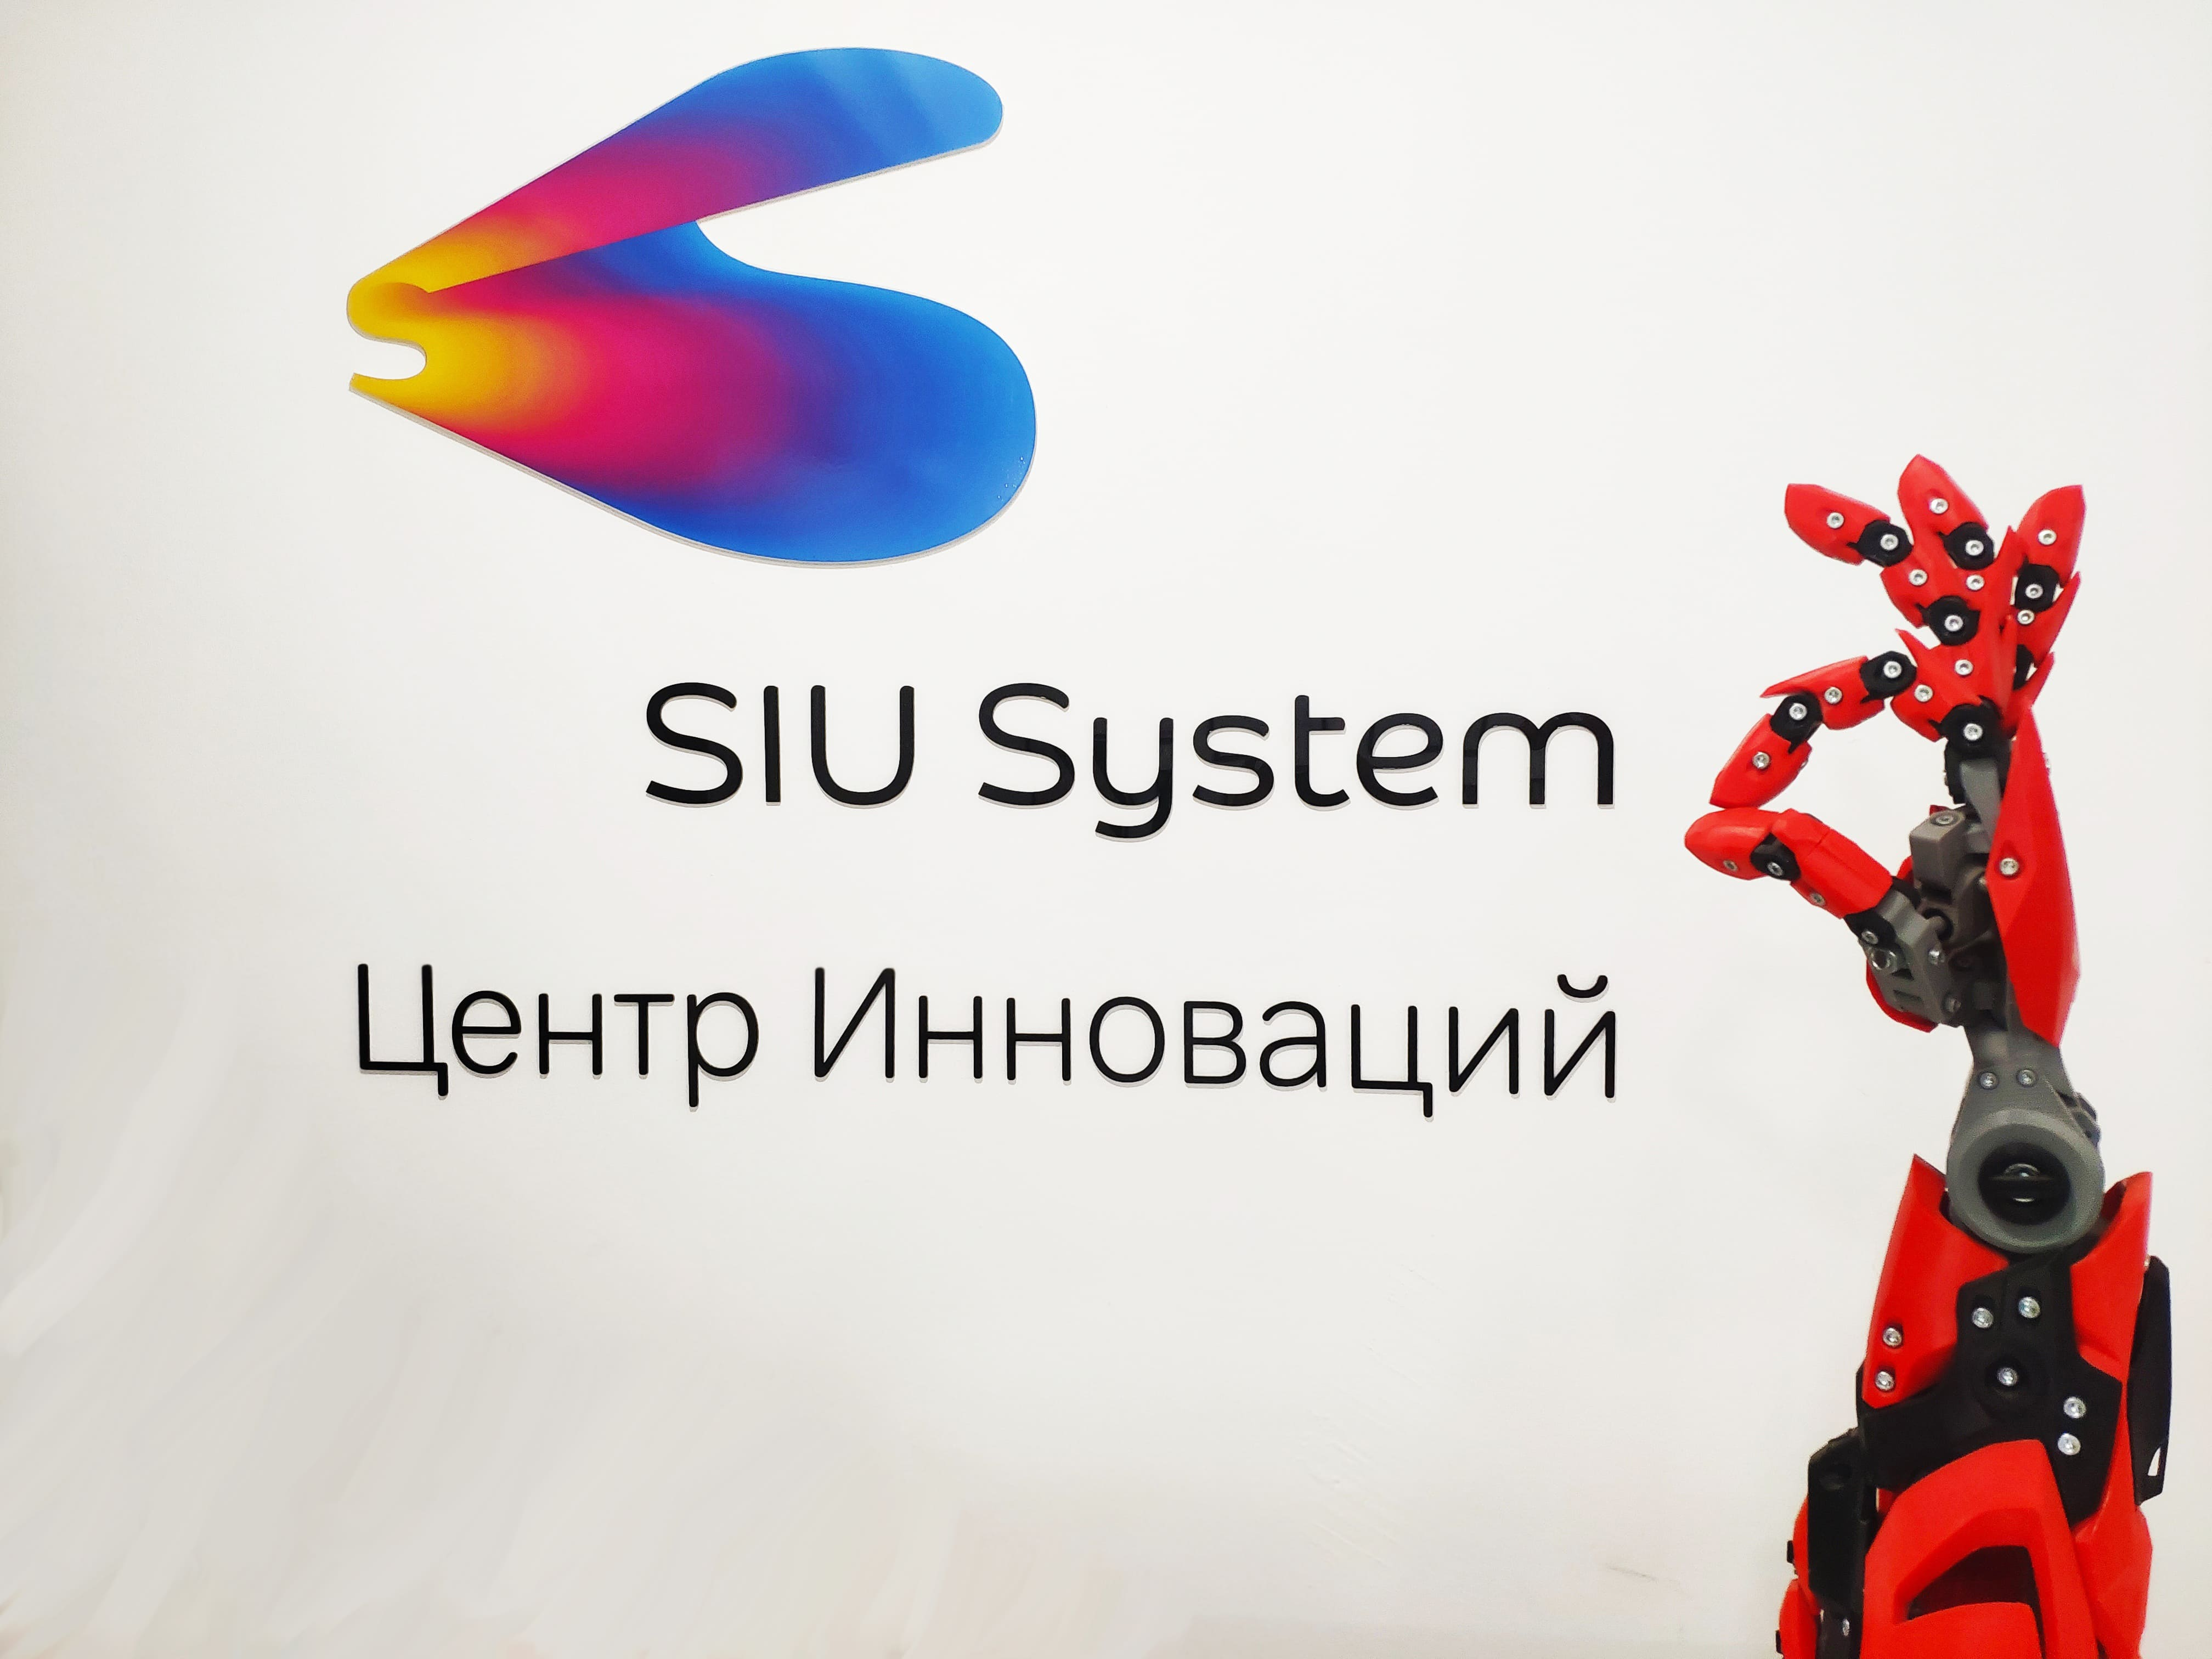 SIU System, 3D-Store